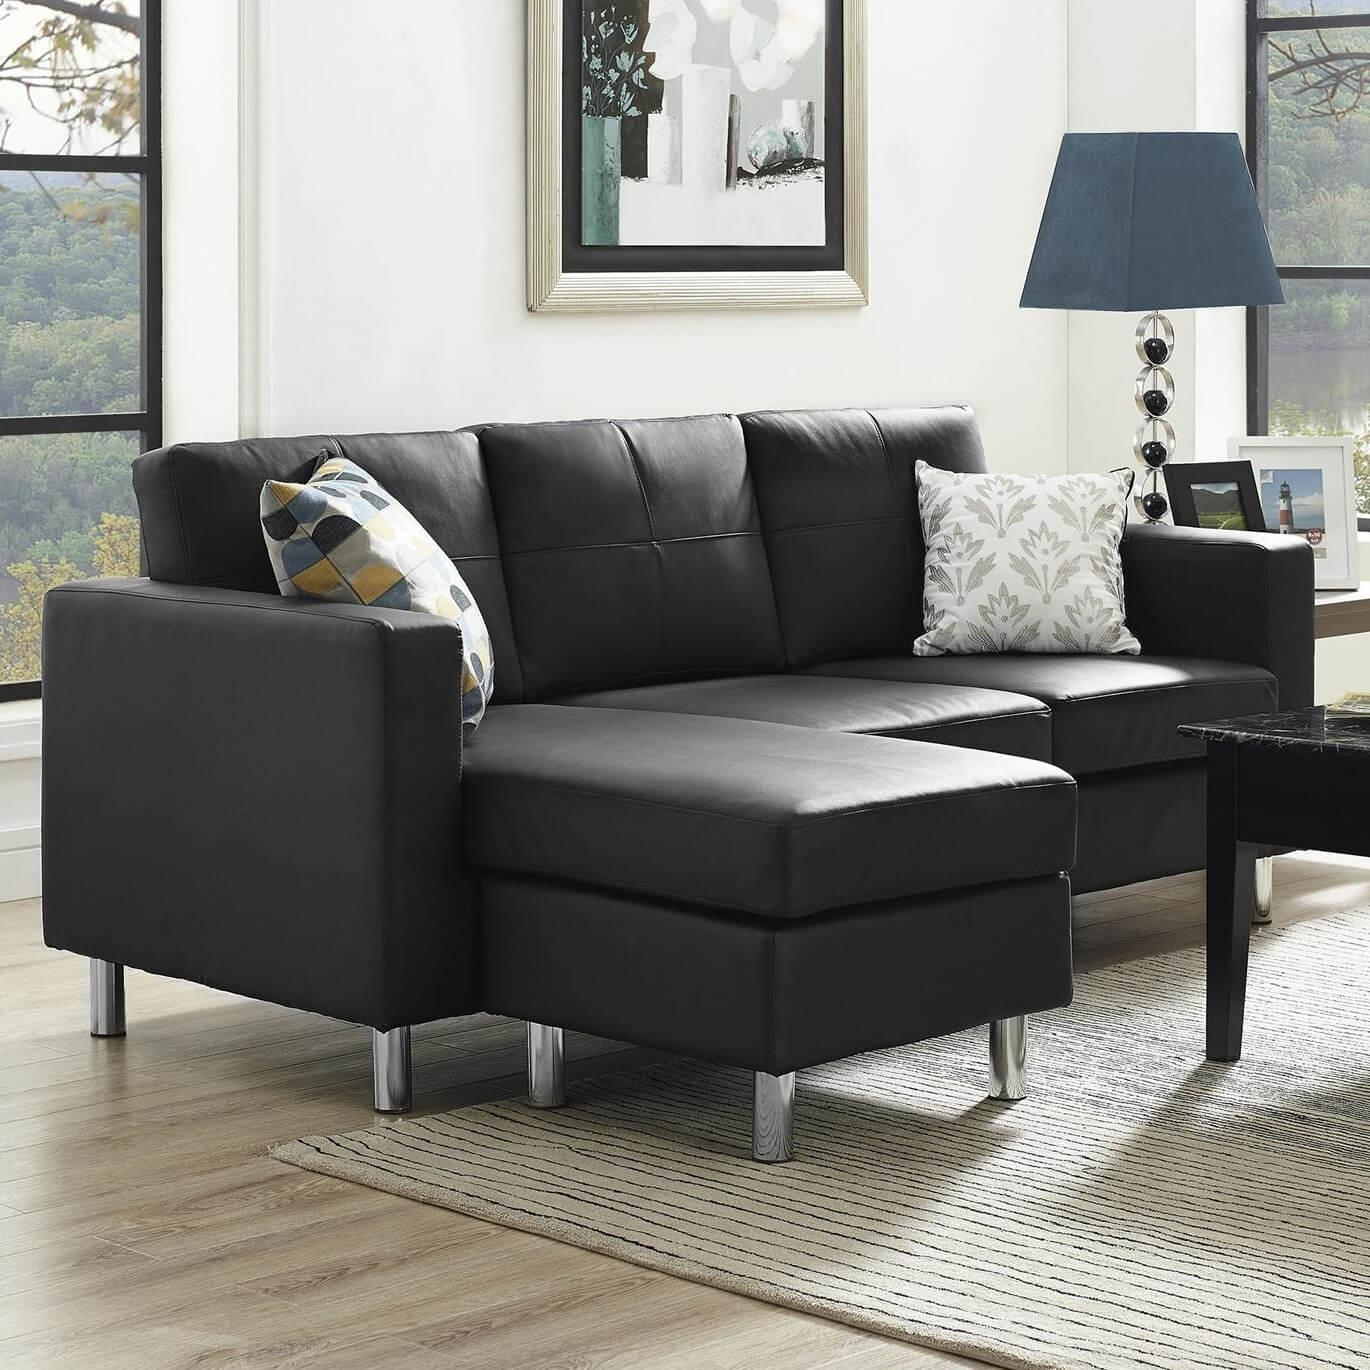 13 Sectional Sofas Under $500 (Several Styles) | Home Stratosphere throughout Small Scale Leather Sectional Sofas